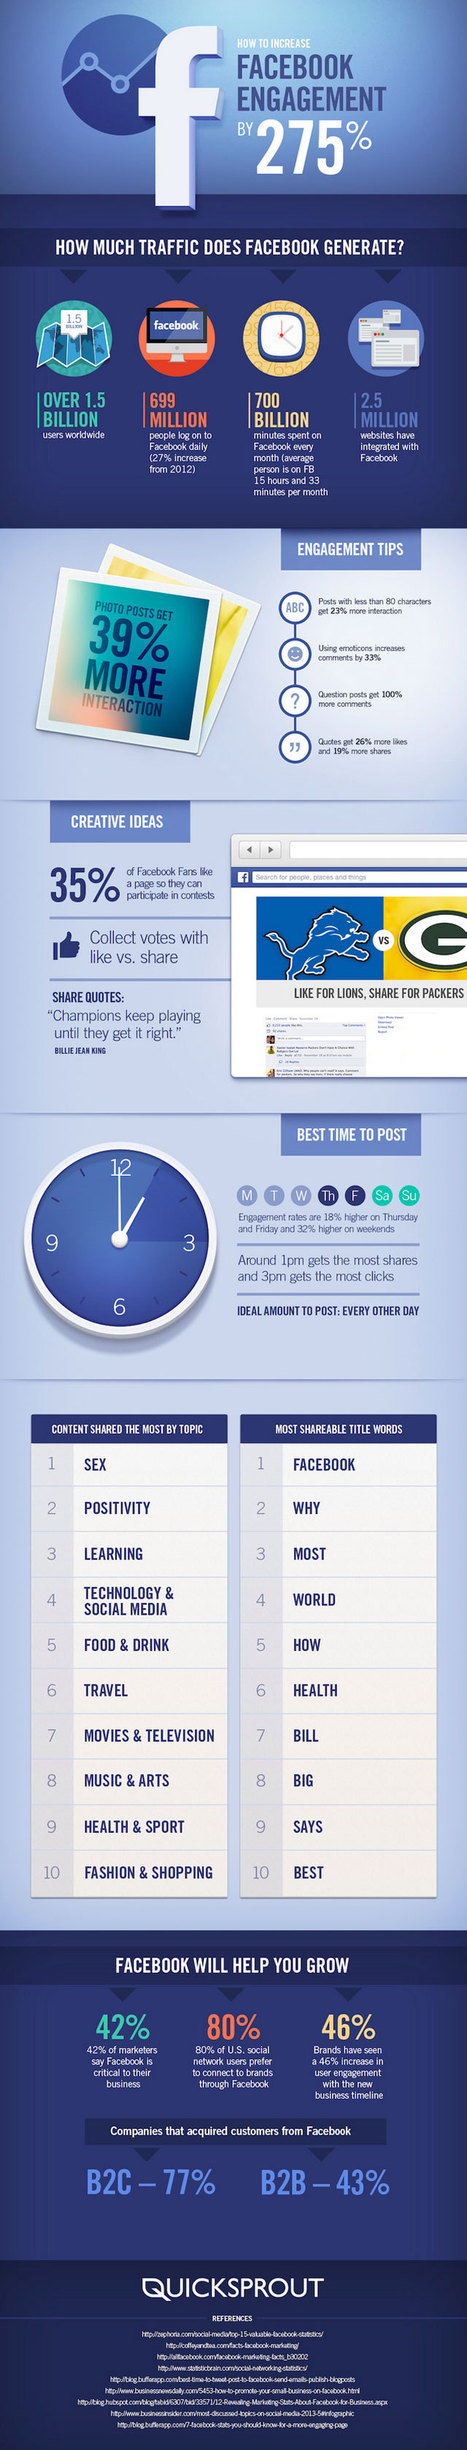 How to Increase Your Facebook Engagement by 275% #Infographic | MarketingHits | Scoop.it